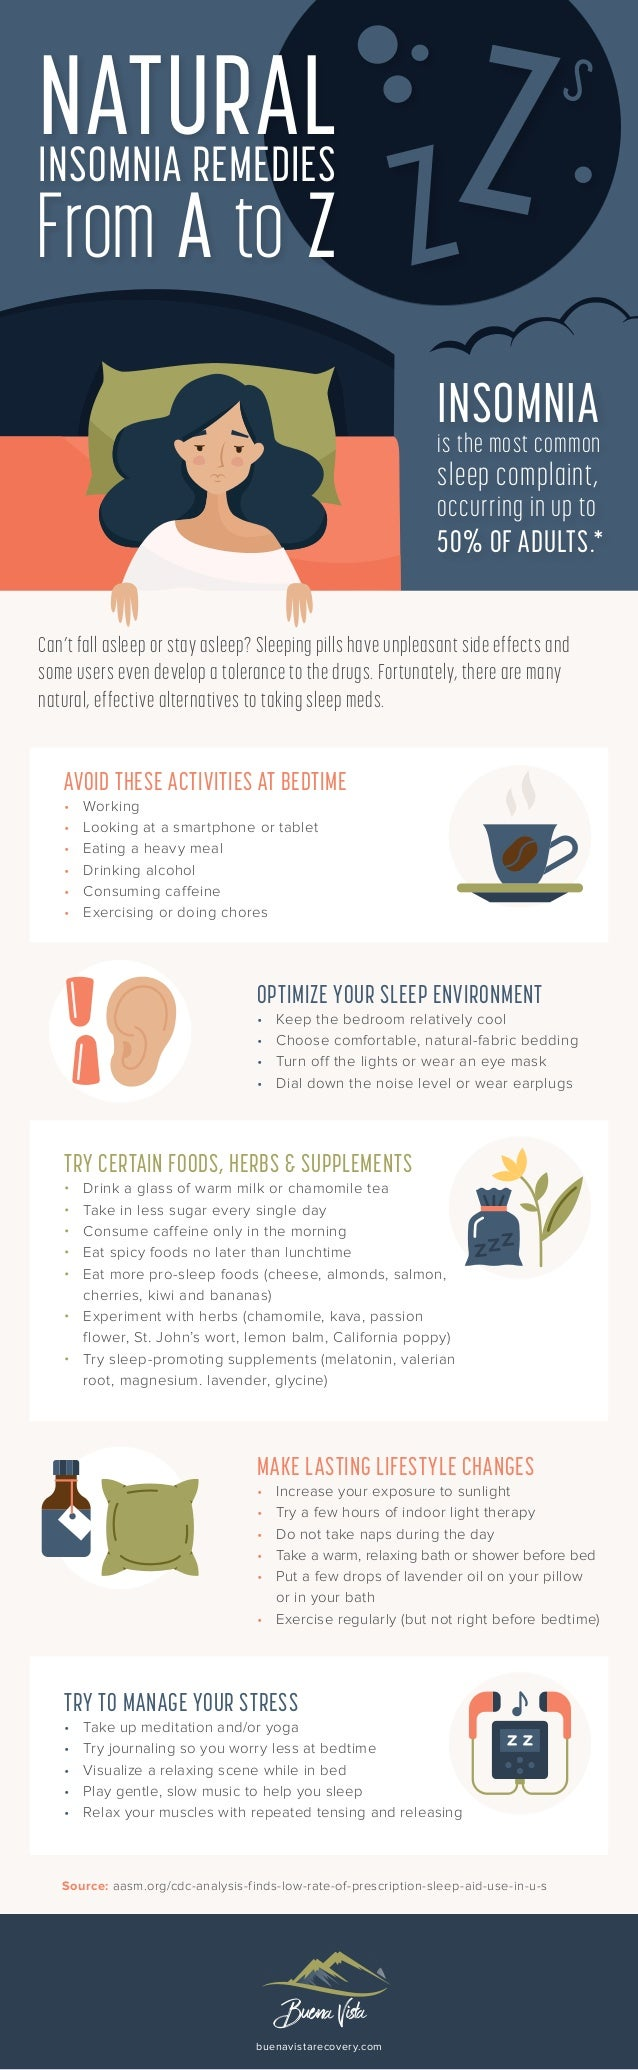 NATURALINSOMNIA REMEDIES INSOMNIA is the most common sleep complaint, occurring in up to 50% OF ADULTS.* From A to Z zS z ...